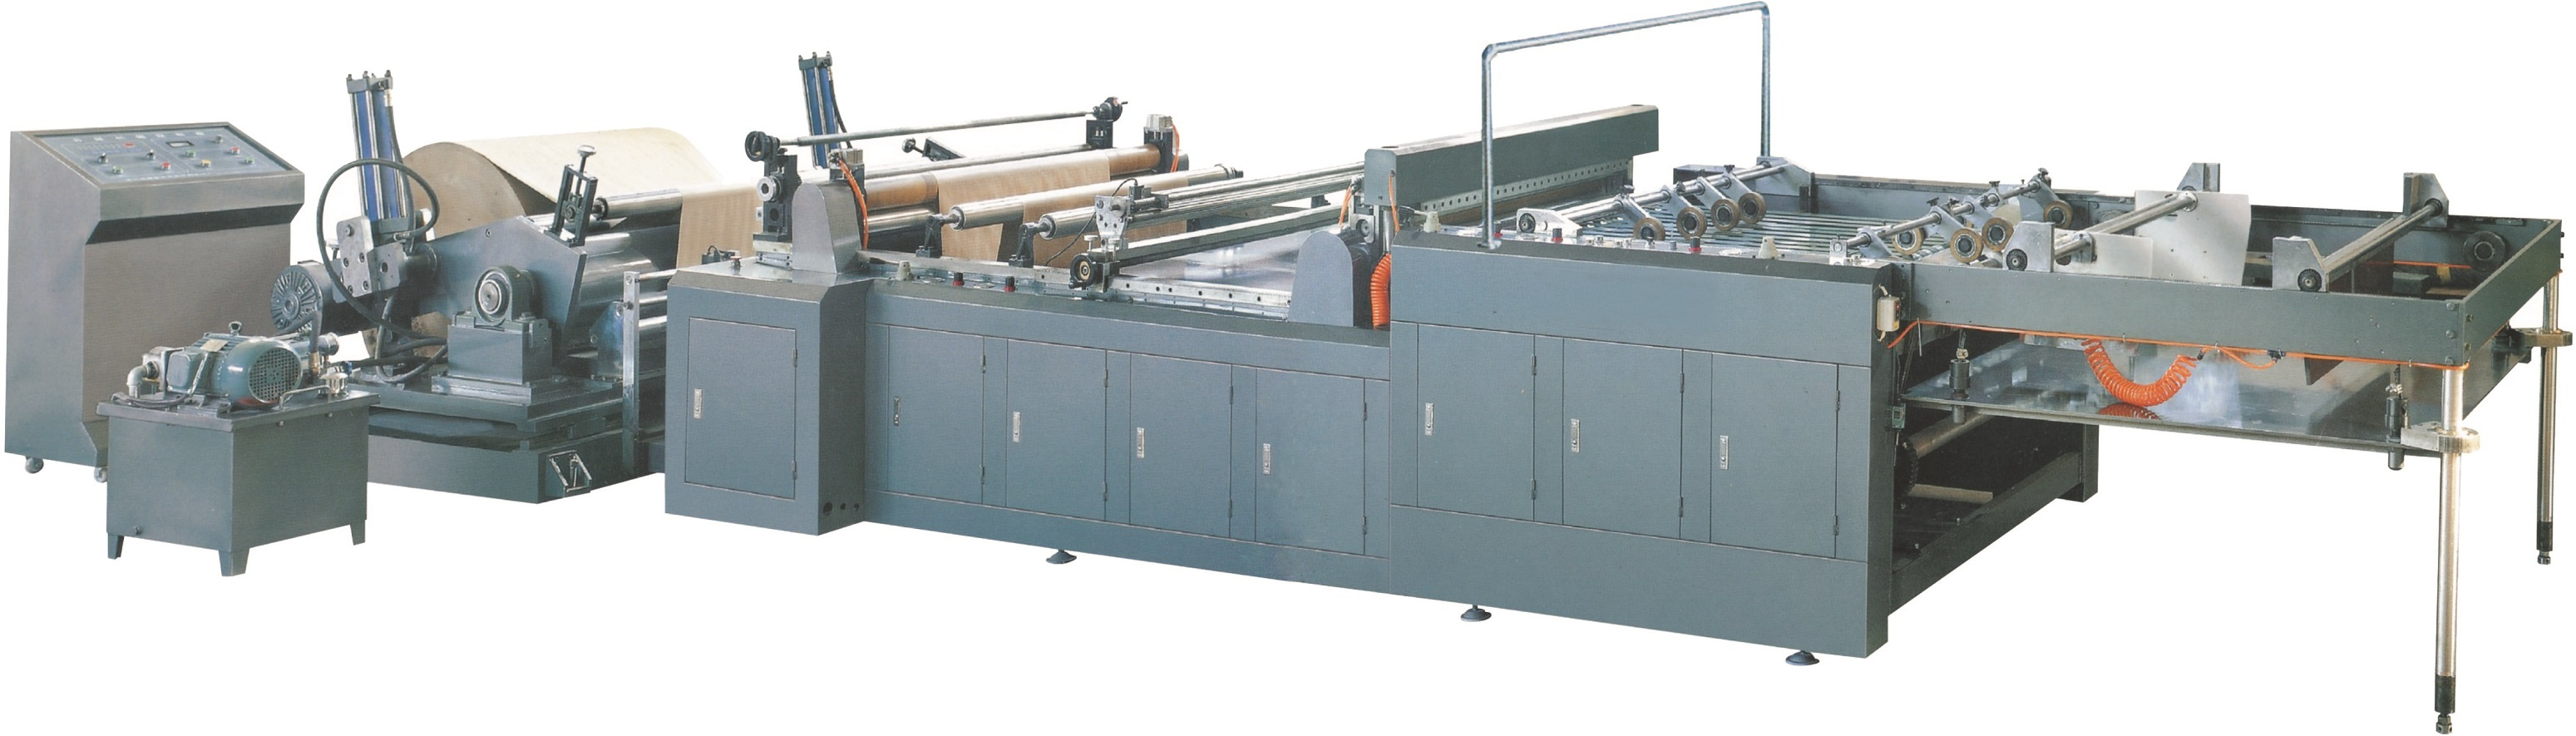 EHQ-A1100/A1300/A1600 Fully Automatic Cross Cutting Machine